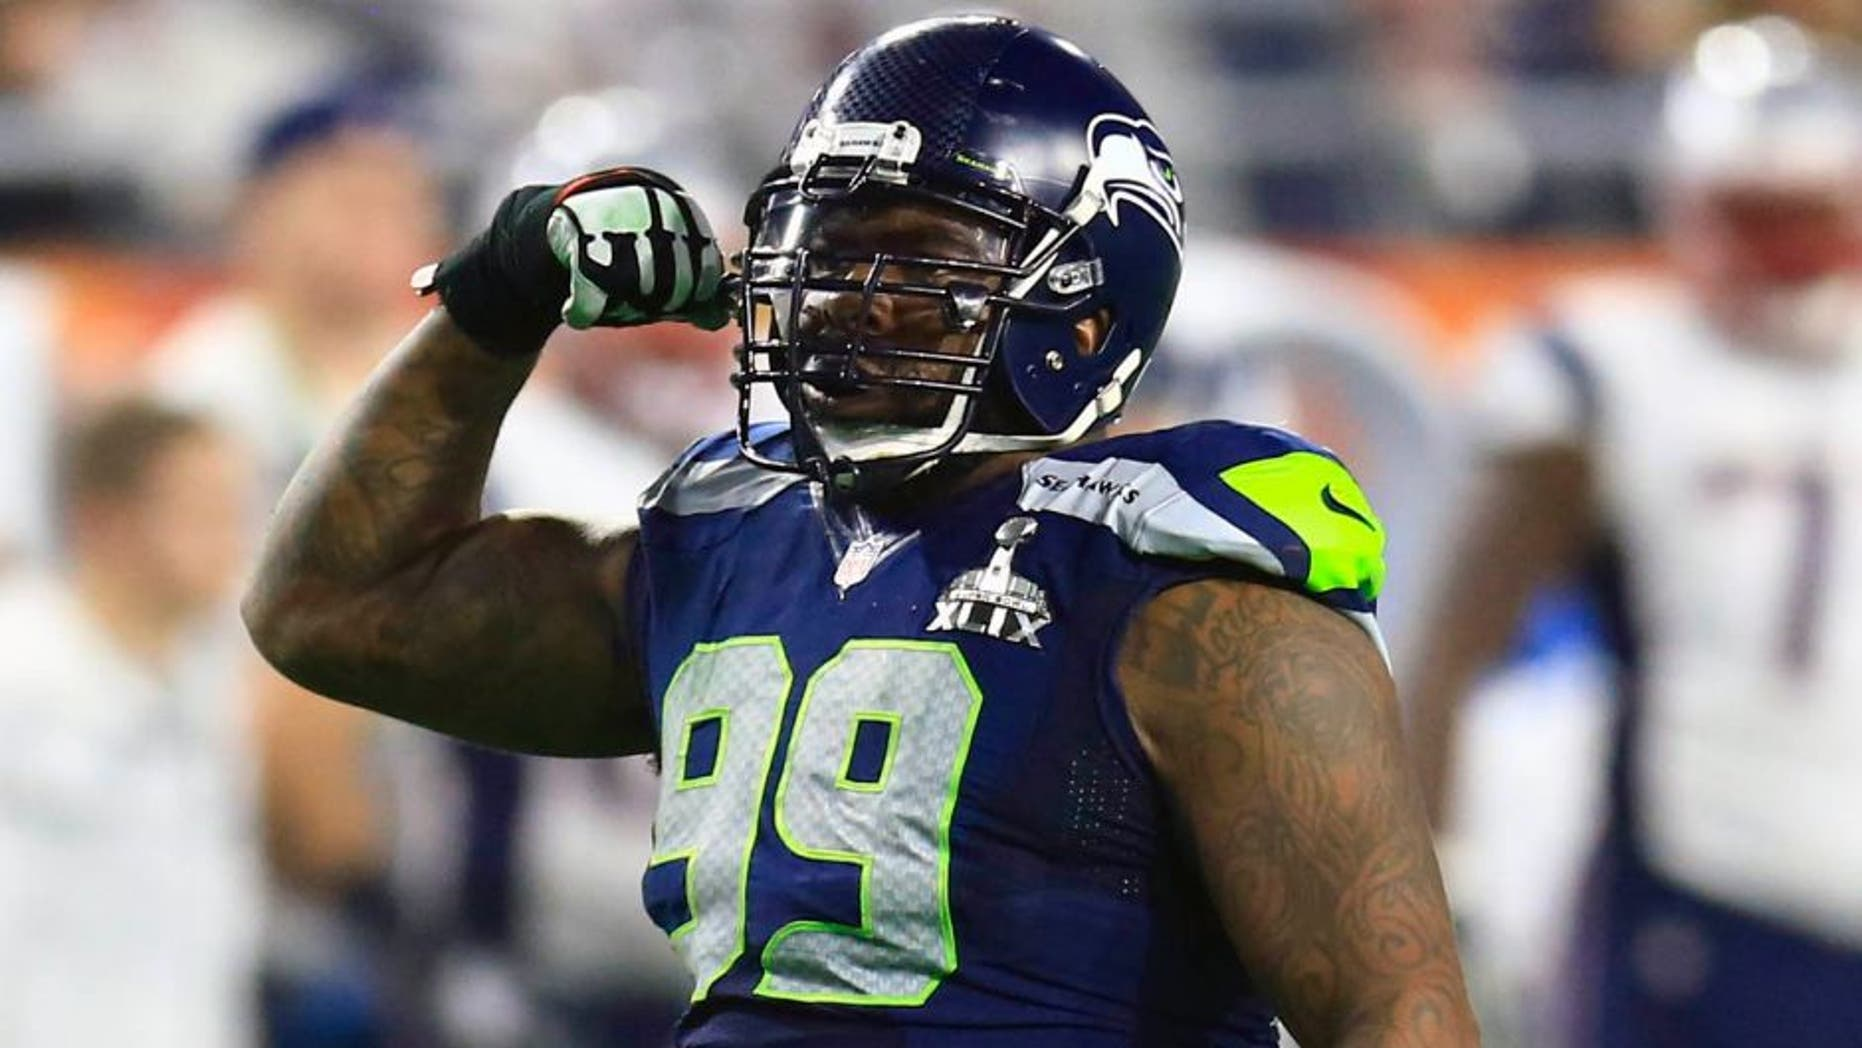 Feb 1, 2015; Glendale, AZ, USA; Seattle Seahawks defensive tackle Tony McDaniel (99) reacts after a play aNew England Patriots during the third quarter in Super Bowl XLIX at University of Phoenix Stadium. Mandatory Credit: Andrew Weber-USA TODAY Sports